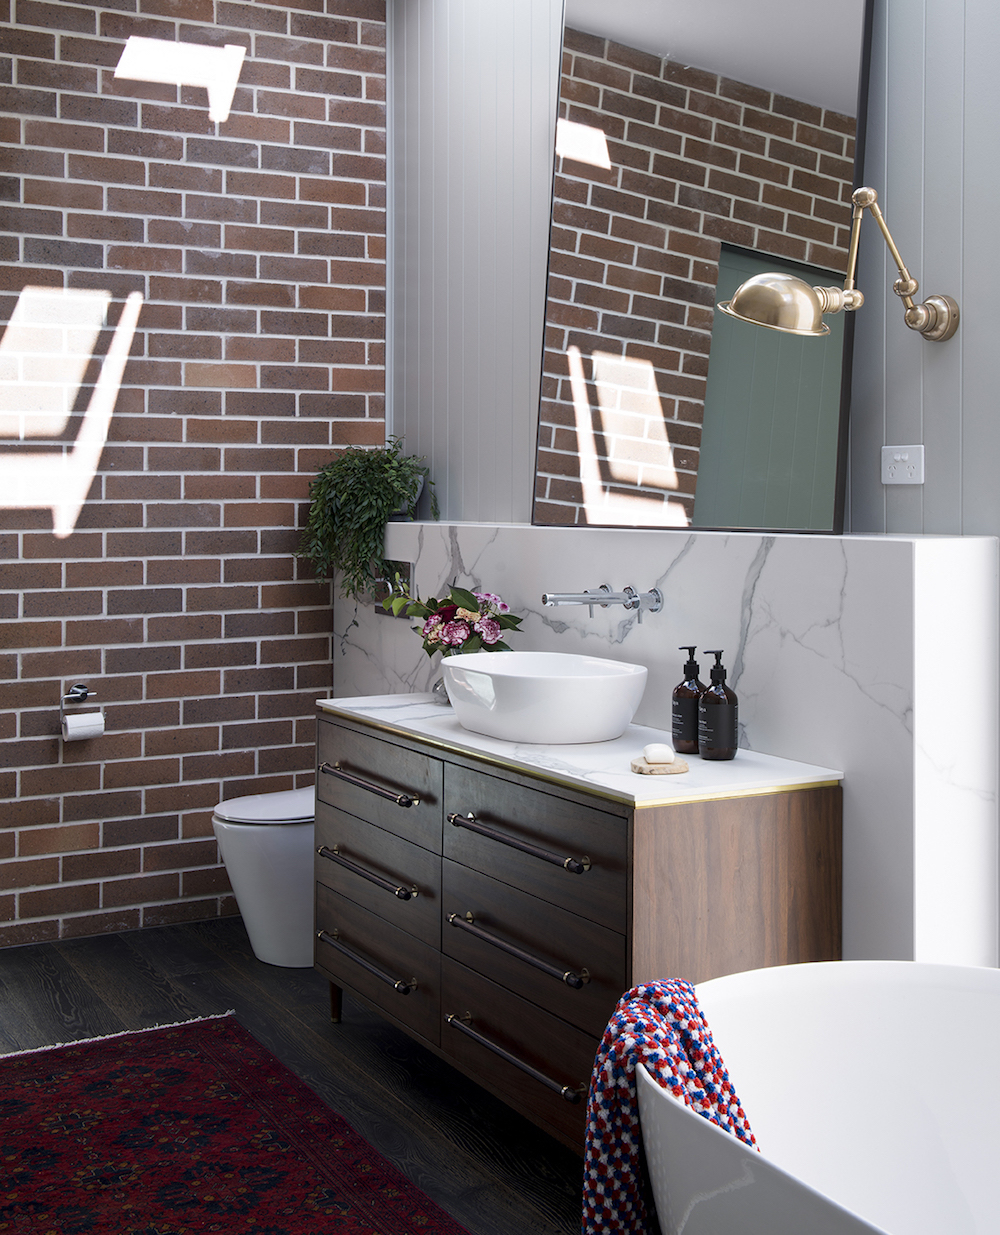 Bathroom renovation tips by First Sense || Marble-effect porcelain